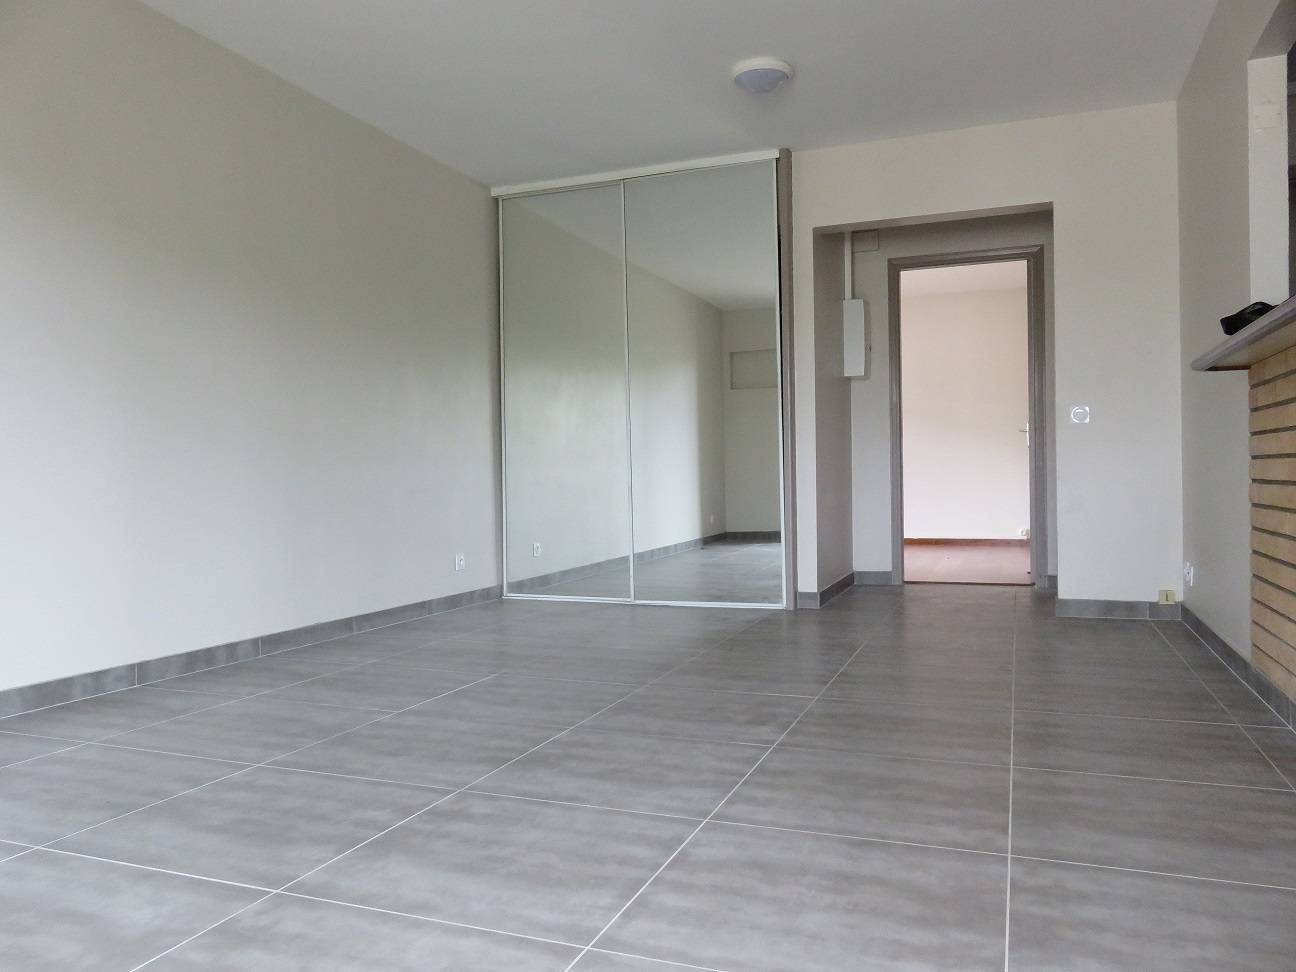 Appartement f2 noum a vall e des colons for Appartement f2